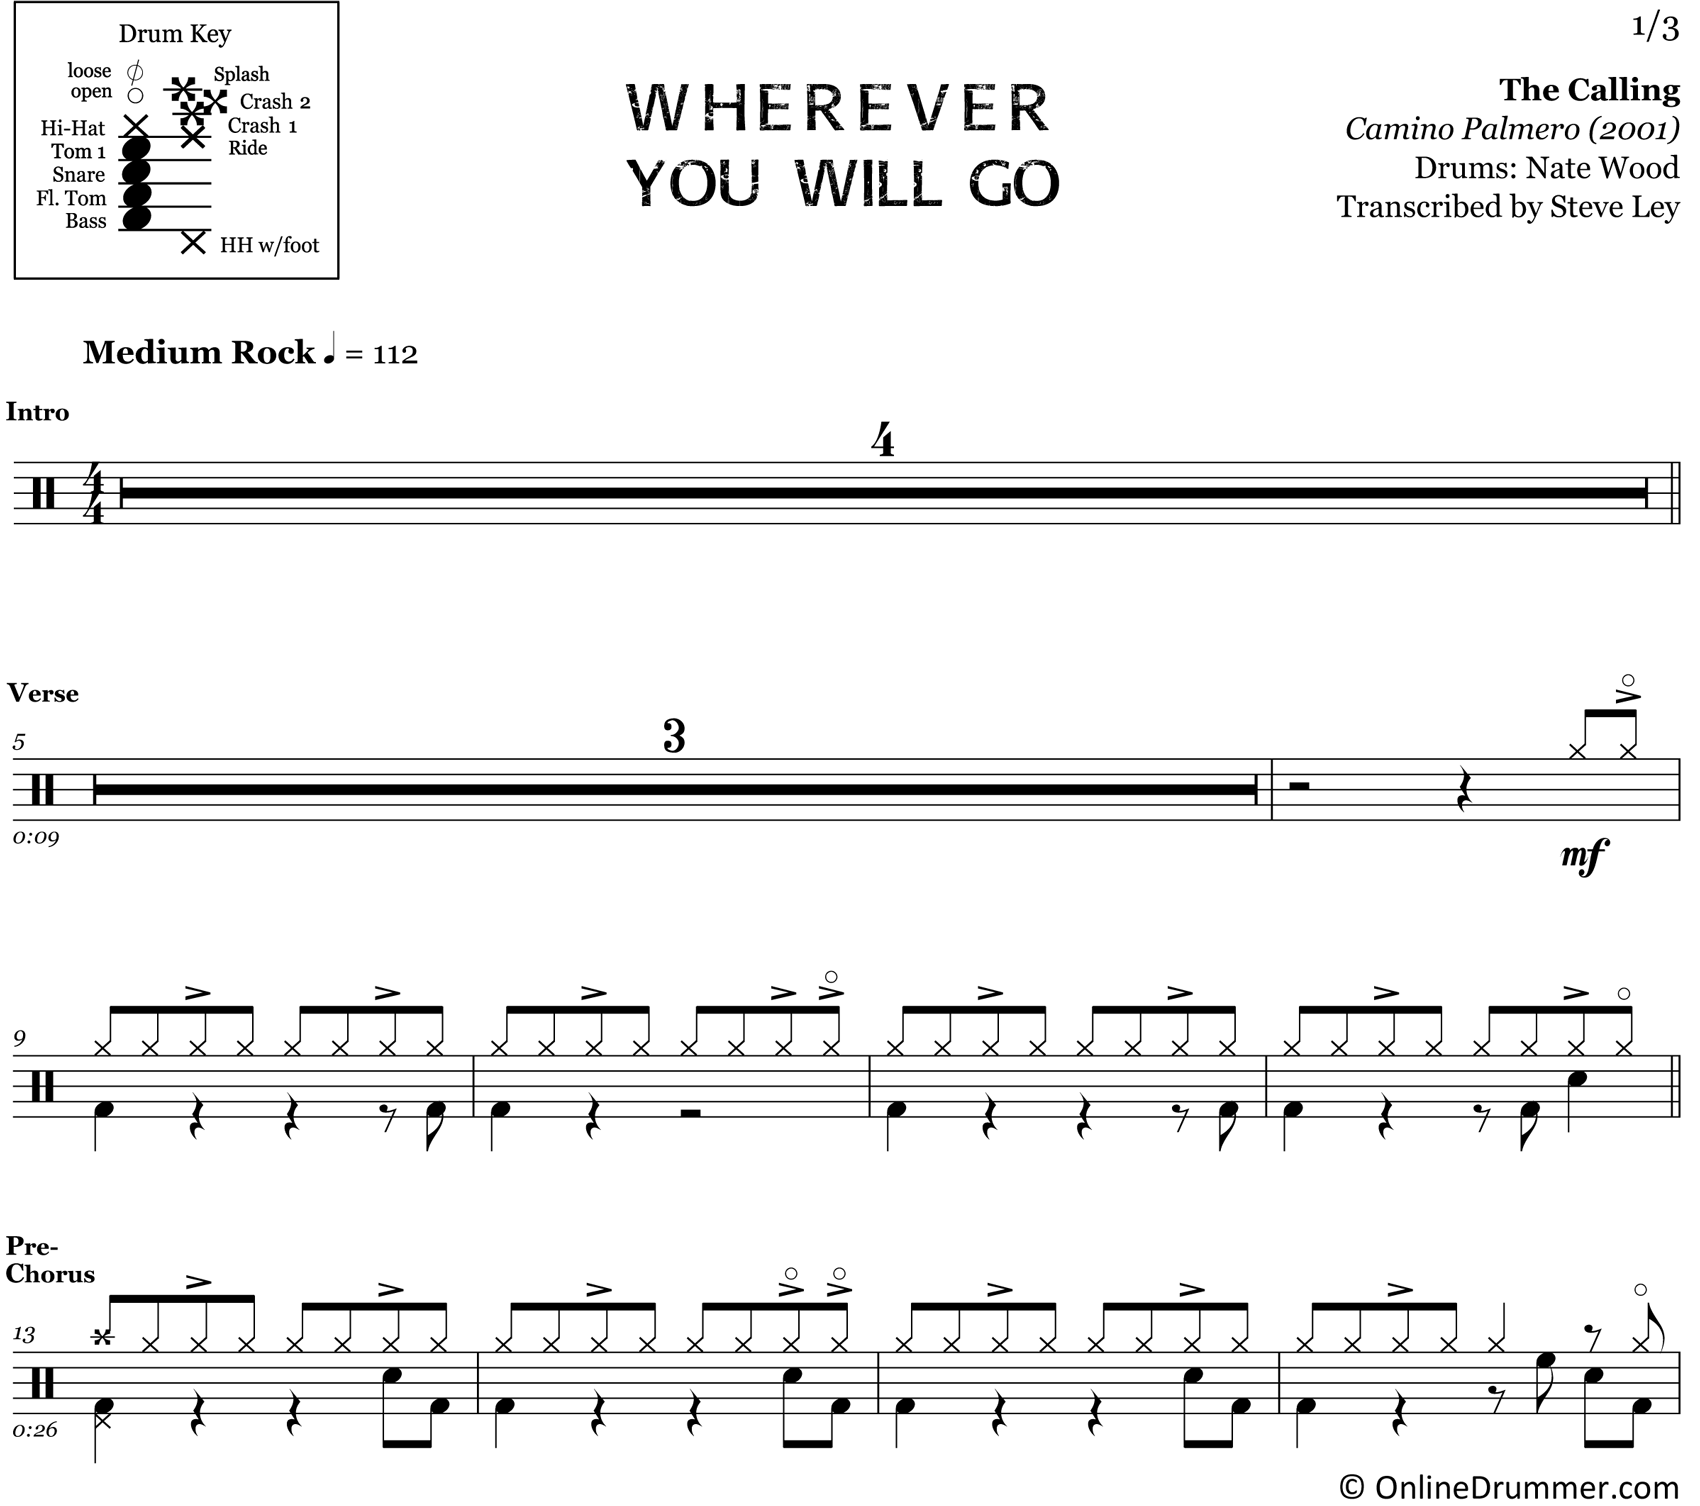 Wherever You Will Go - The Calling - Drum Sheet Music